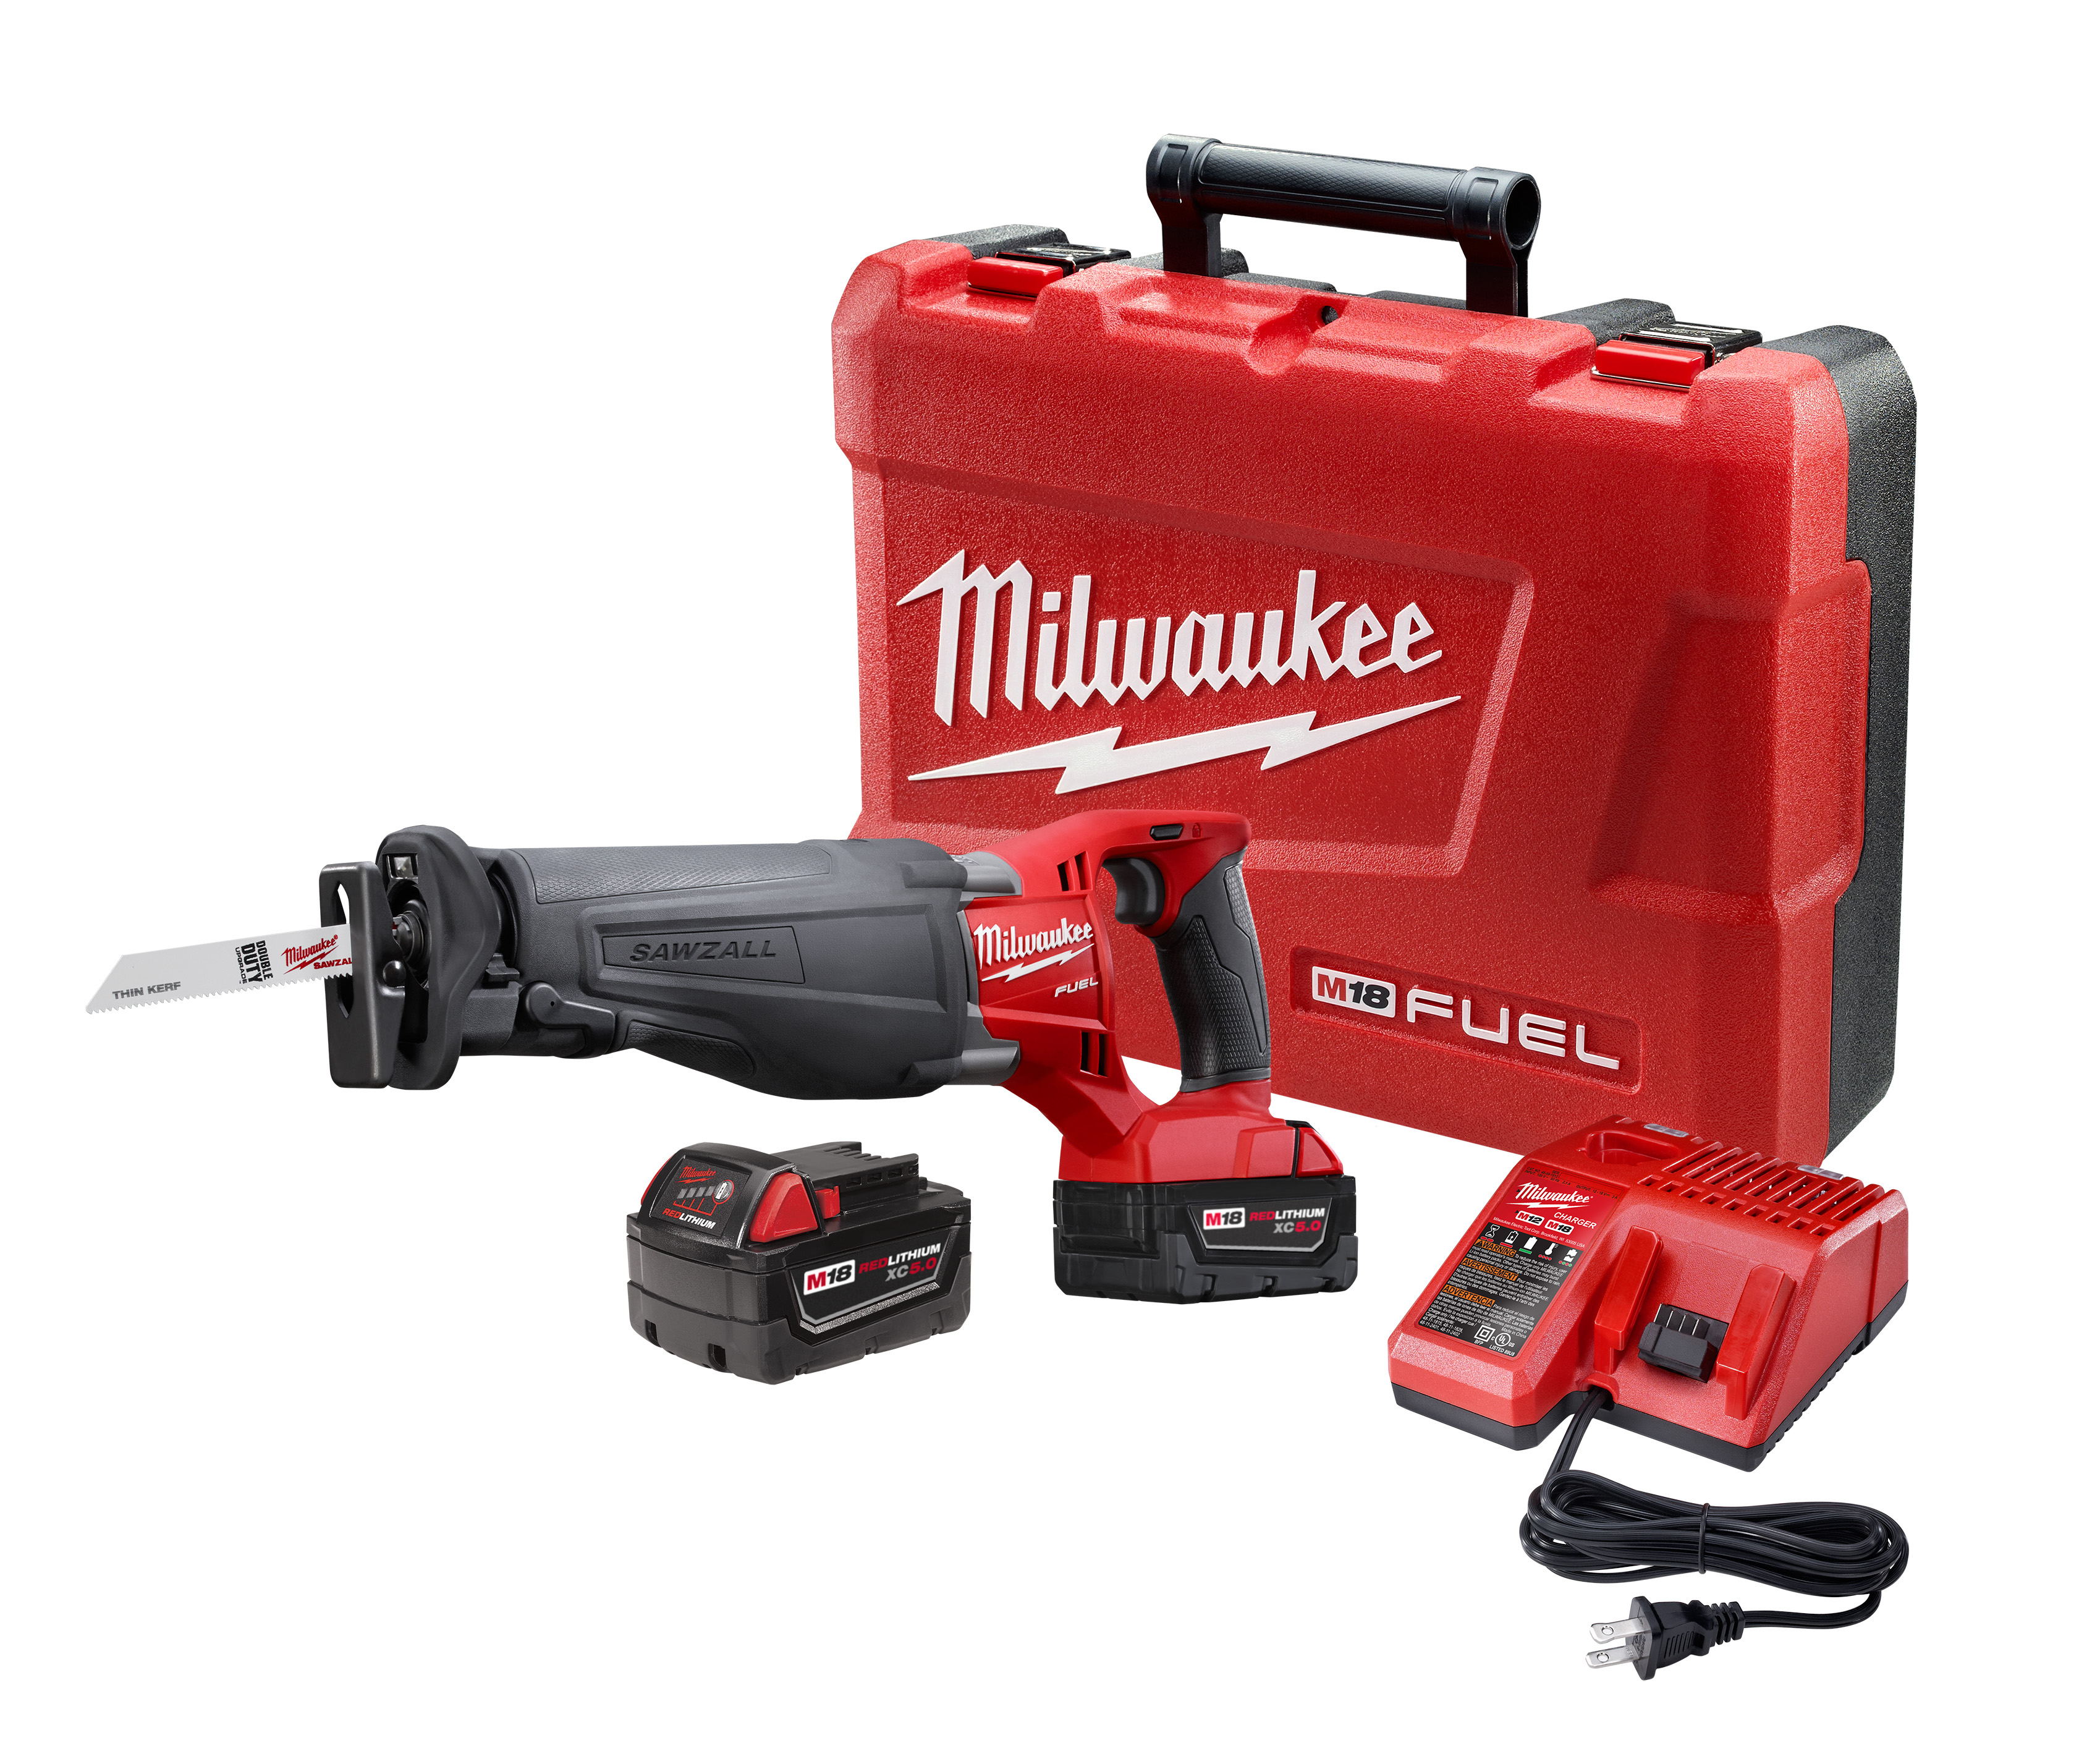 Milwaukee® M18™ FUEL™ SAWZALL™ 2720-22 Adjustable Shoe Cordless Reciprocating Saw Kit, 1-1/8 in L Stroke, 0 to 3000 spm, Straight Cut, 18 VDC, 18-1/2 in OAL